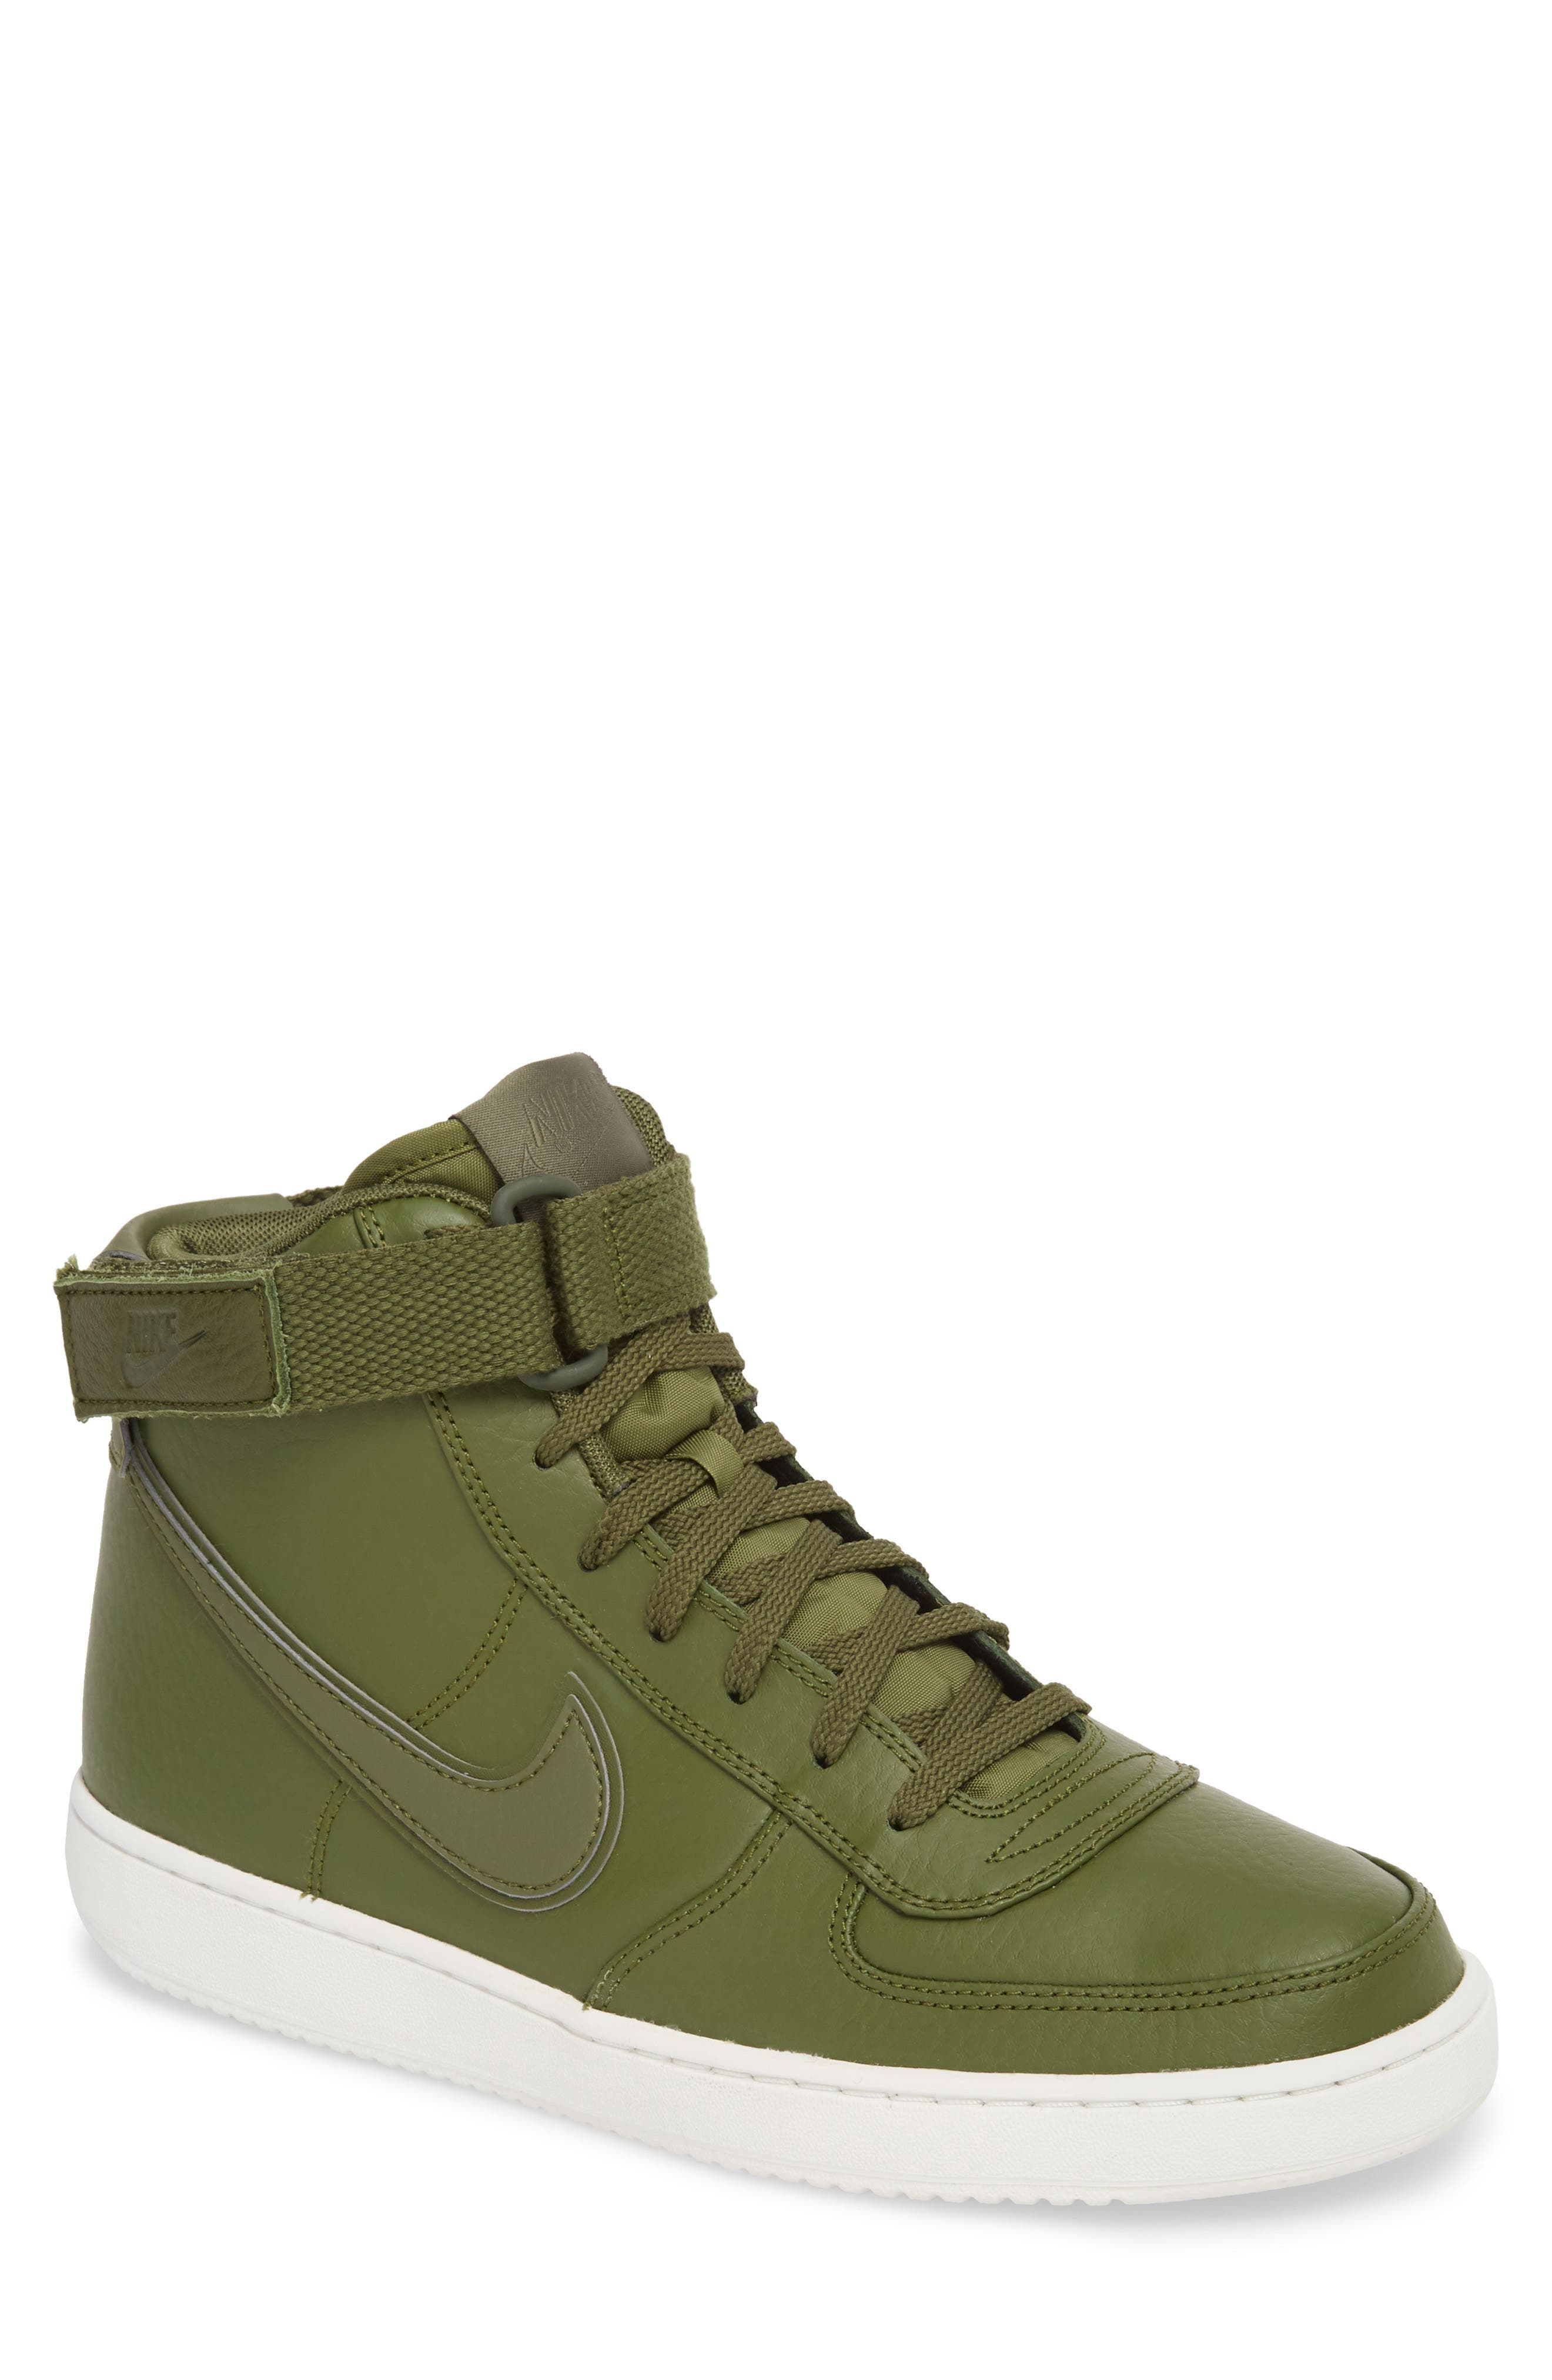 Vandal High Supreme Leather Sneaker,                         Main,                         color, Legion Green/ Summit White